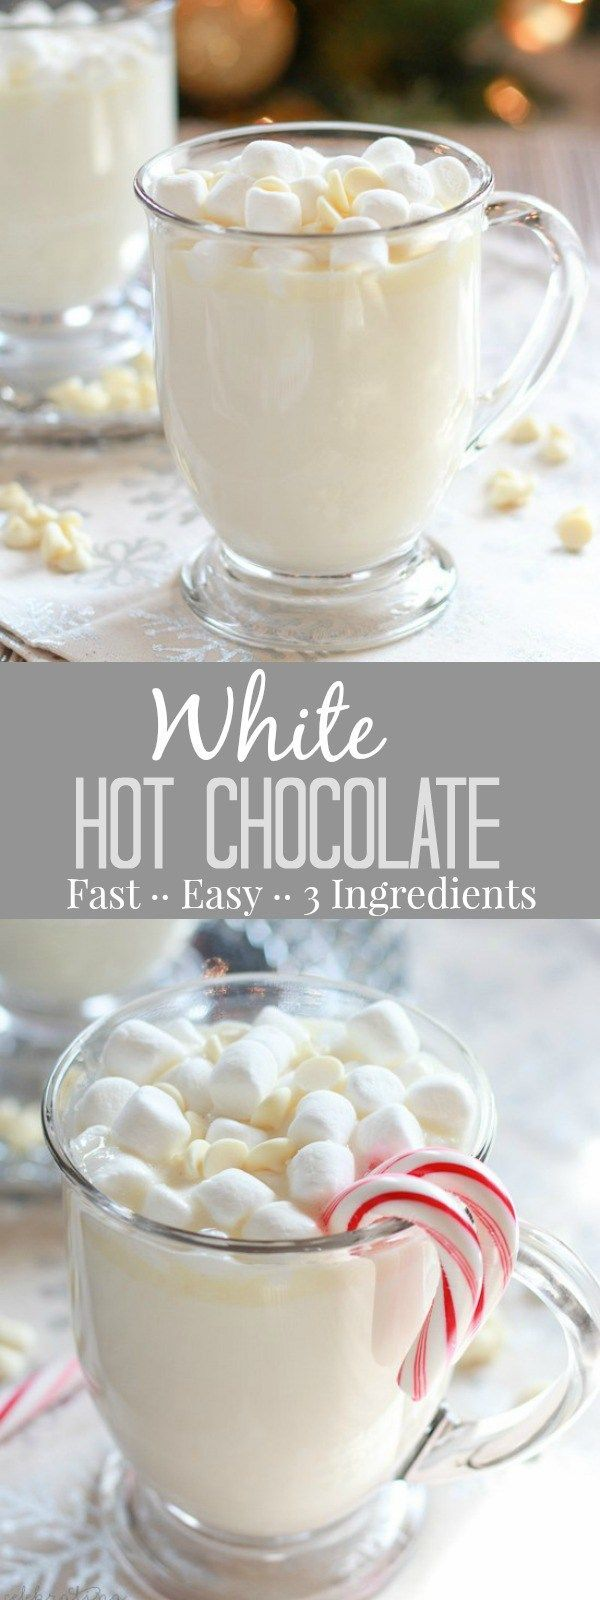 Making hot chocolate for a crowd - Homemade White Hot Chocolate